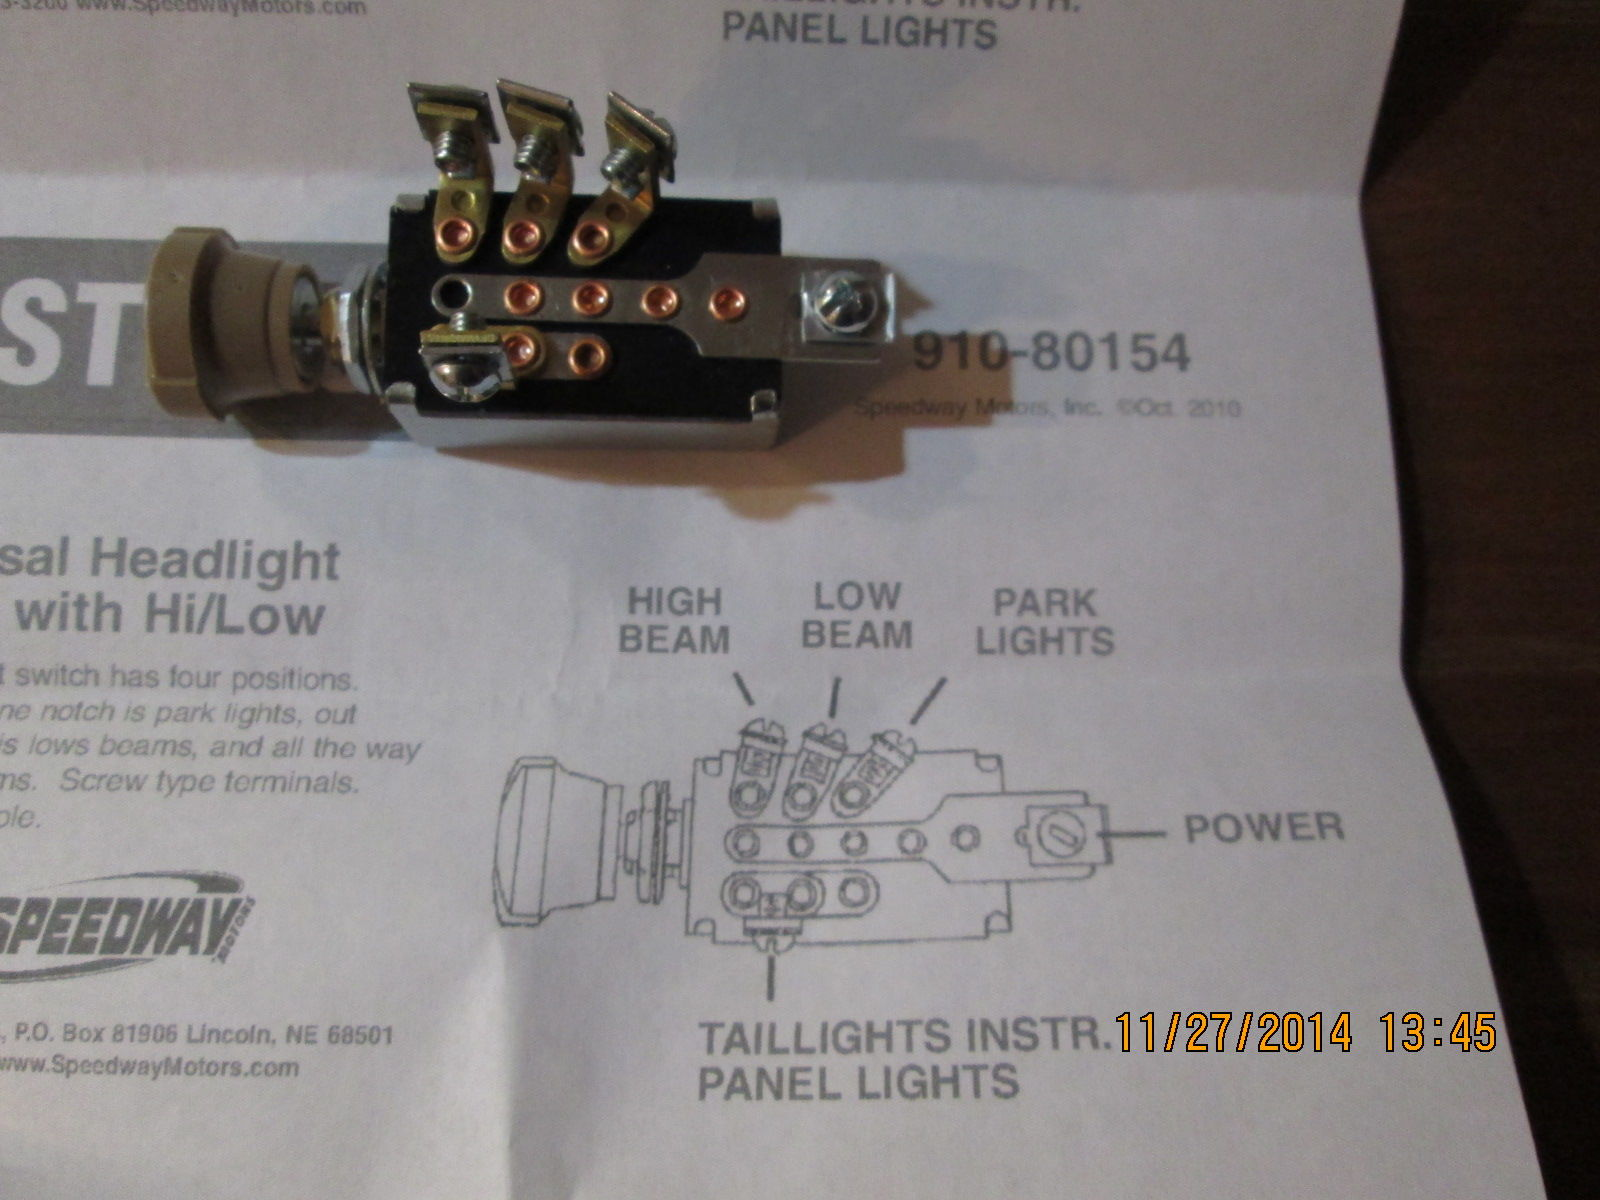 1956 ford headlight switch wiring diagram 1956 4 position headlight switch wiring ford truck enthusiasts forums on 1956 ford headlight switch wiring diagram